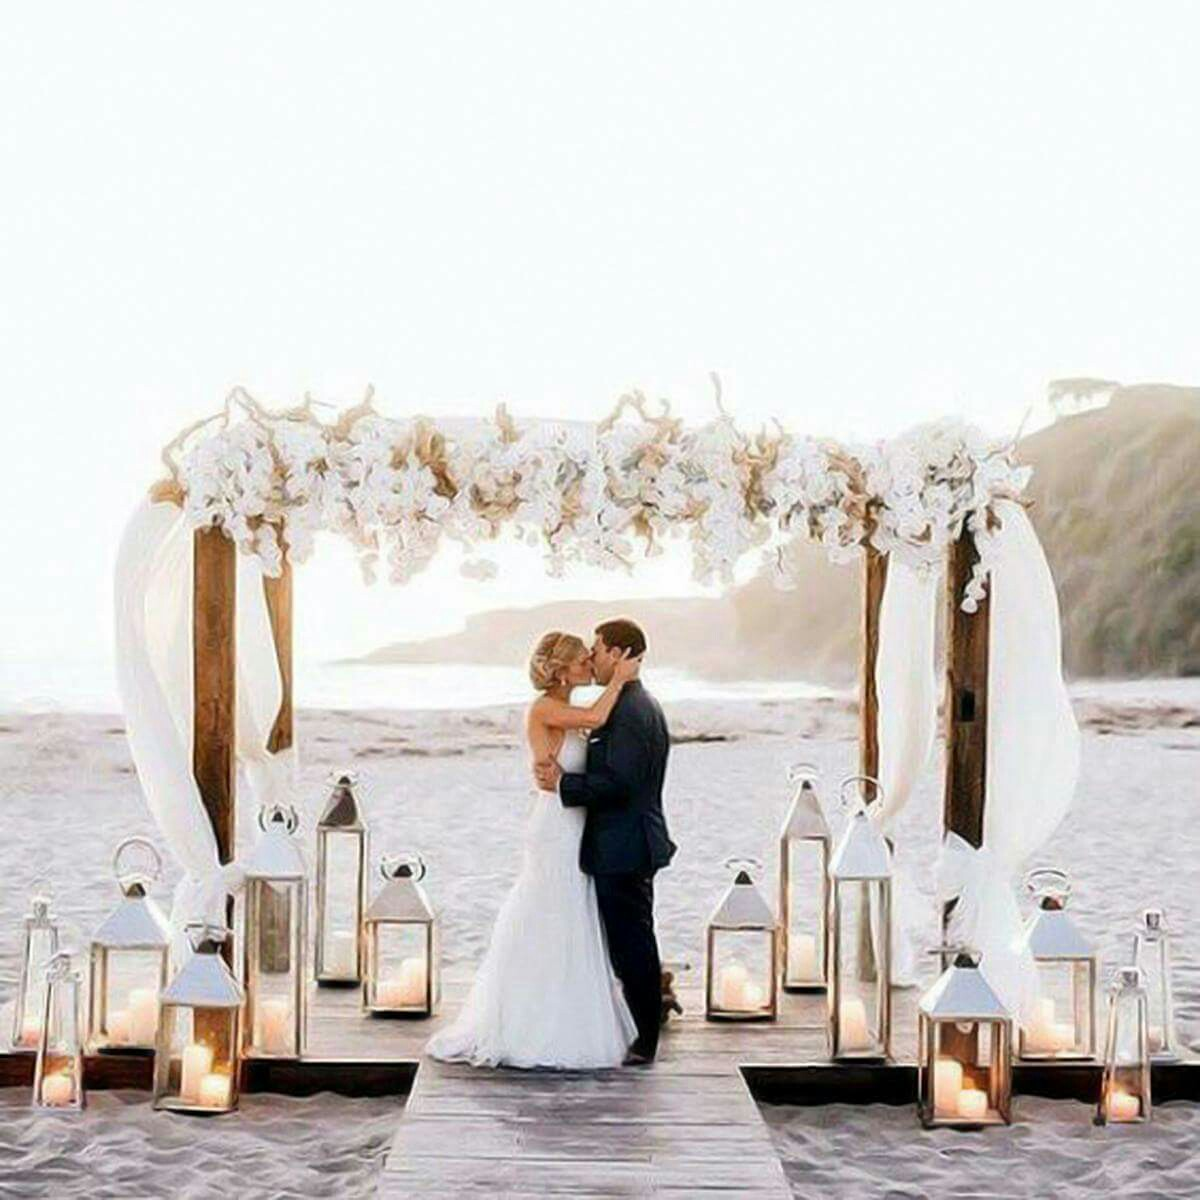 eautiful beach wedding Arch with flowers and lanterns